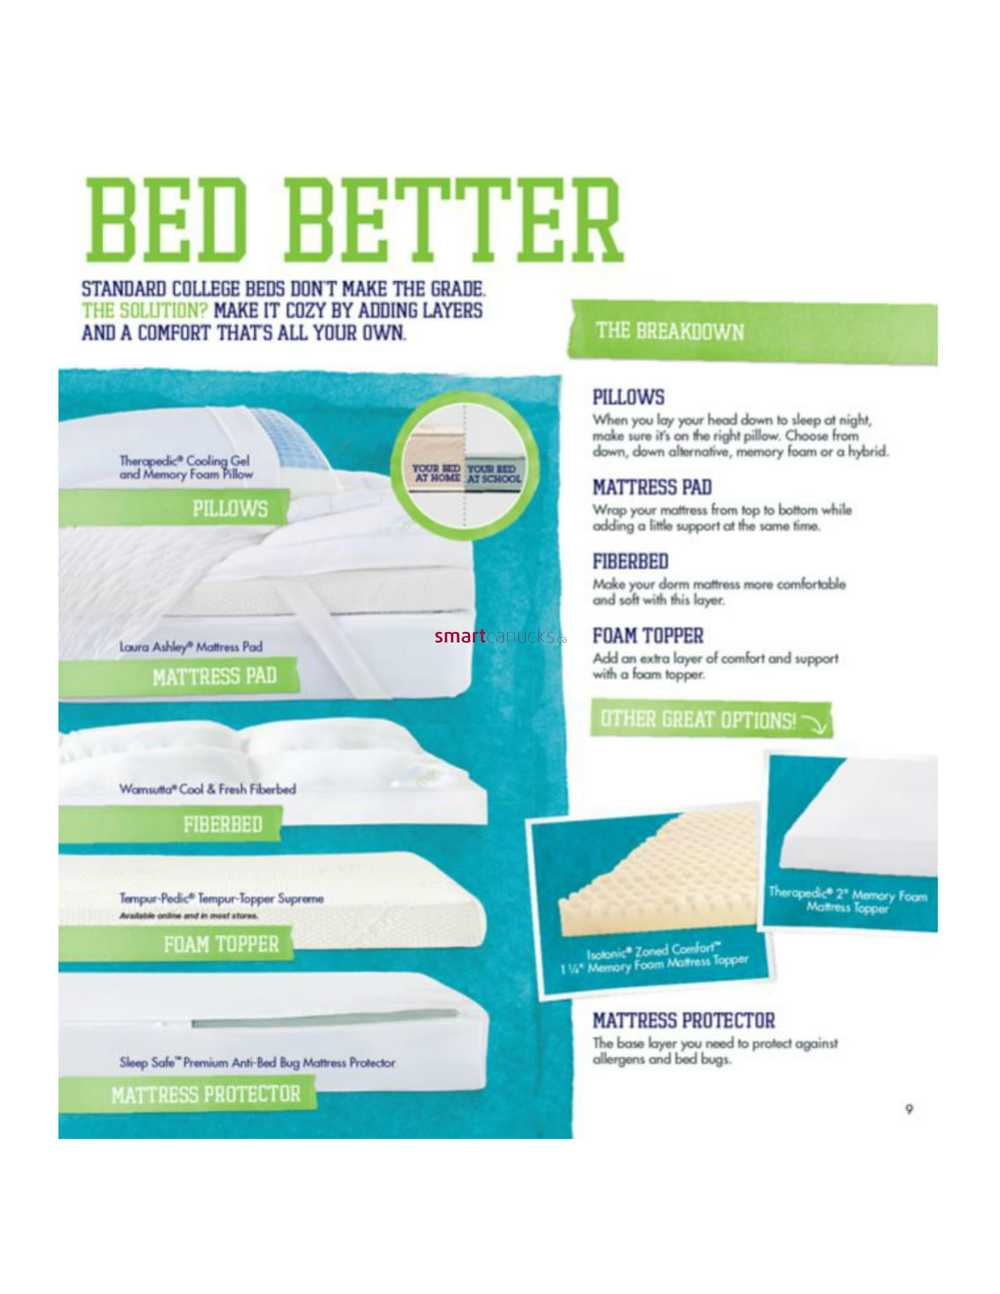 Bed bath and beyond online shopping